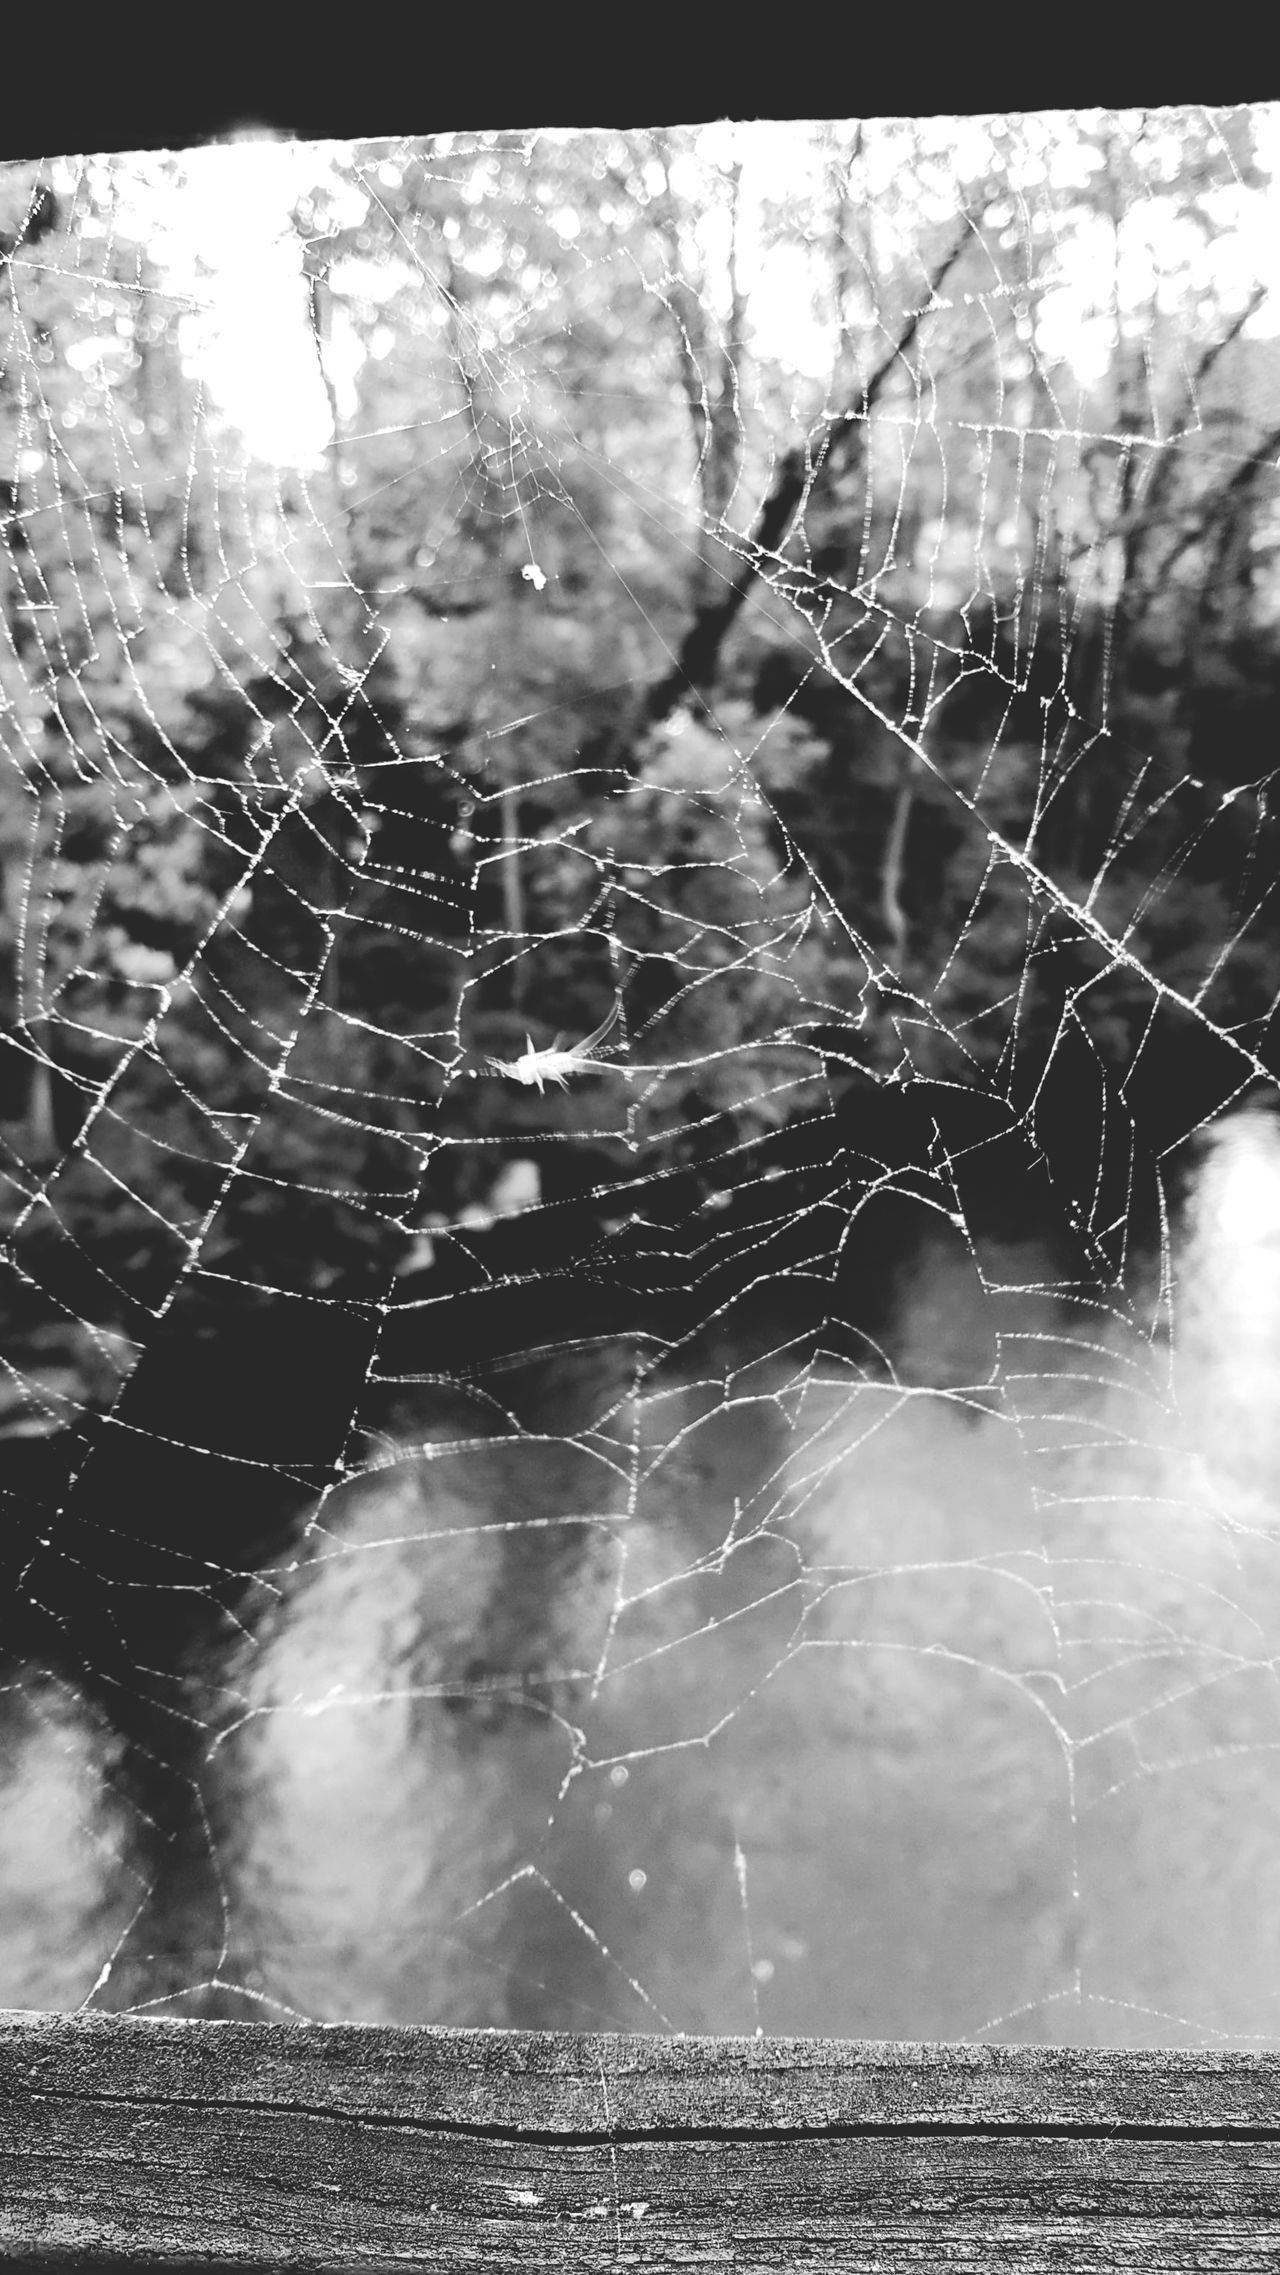 Nature Spider Web Outdoors Water No People Day Beauty In Nature Green Color Web Close-up Blackandwhite Black And White Beauty In Nature Black & White No Colors No Color Tranquility